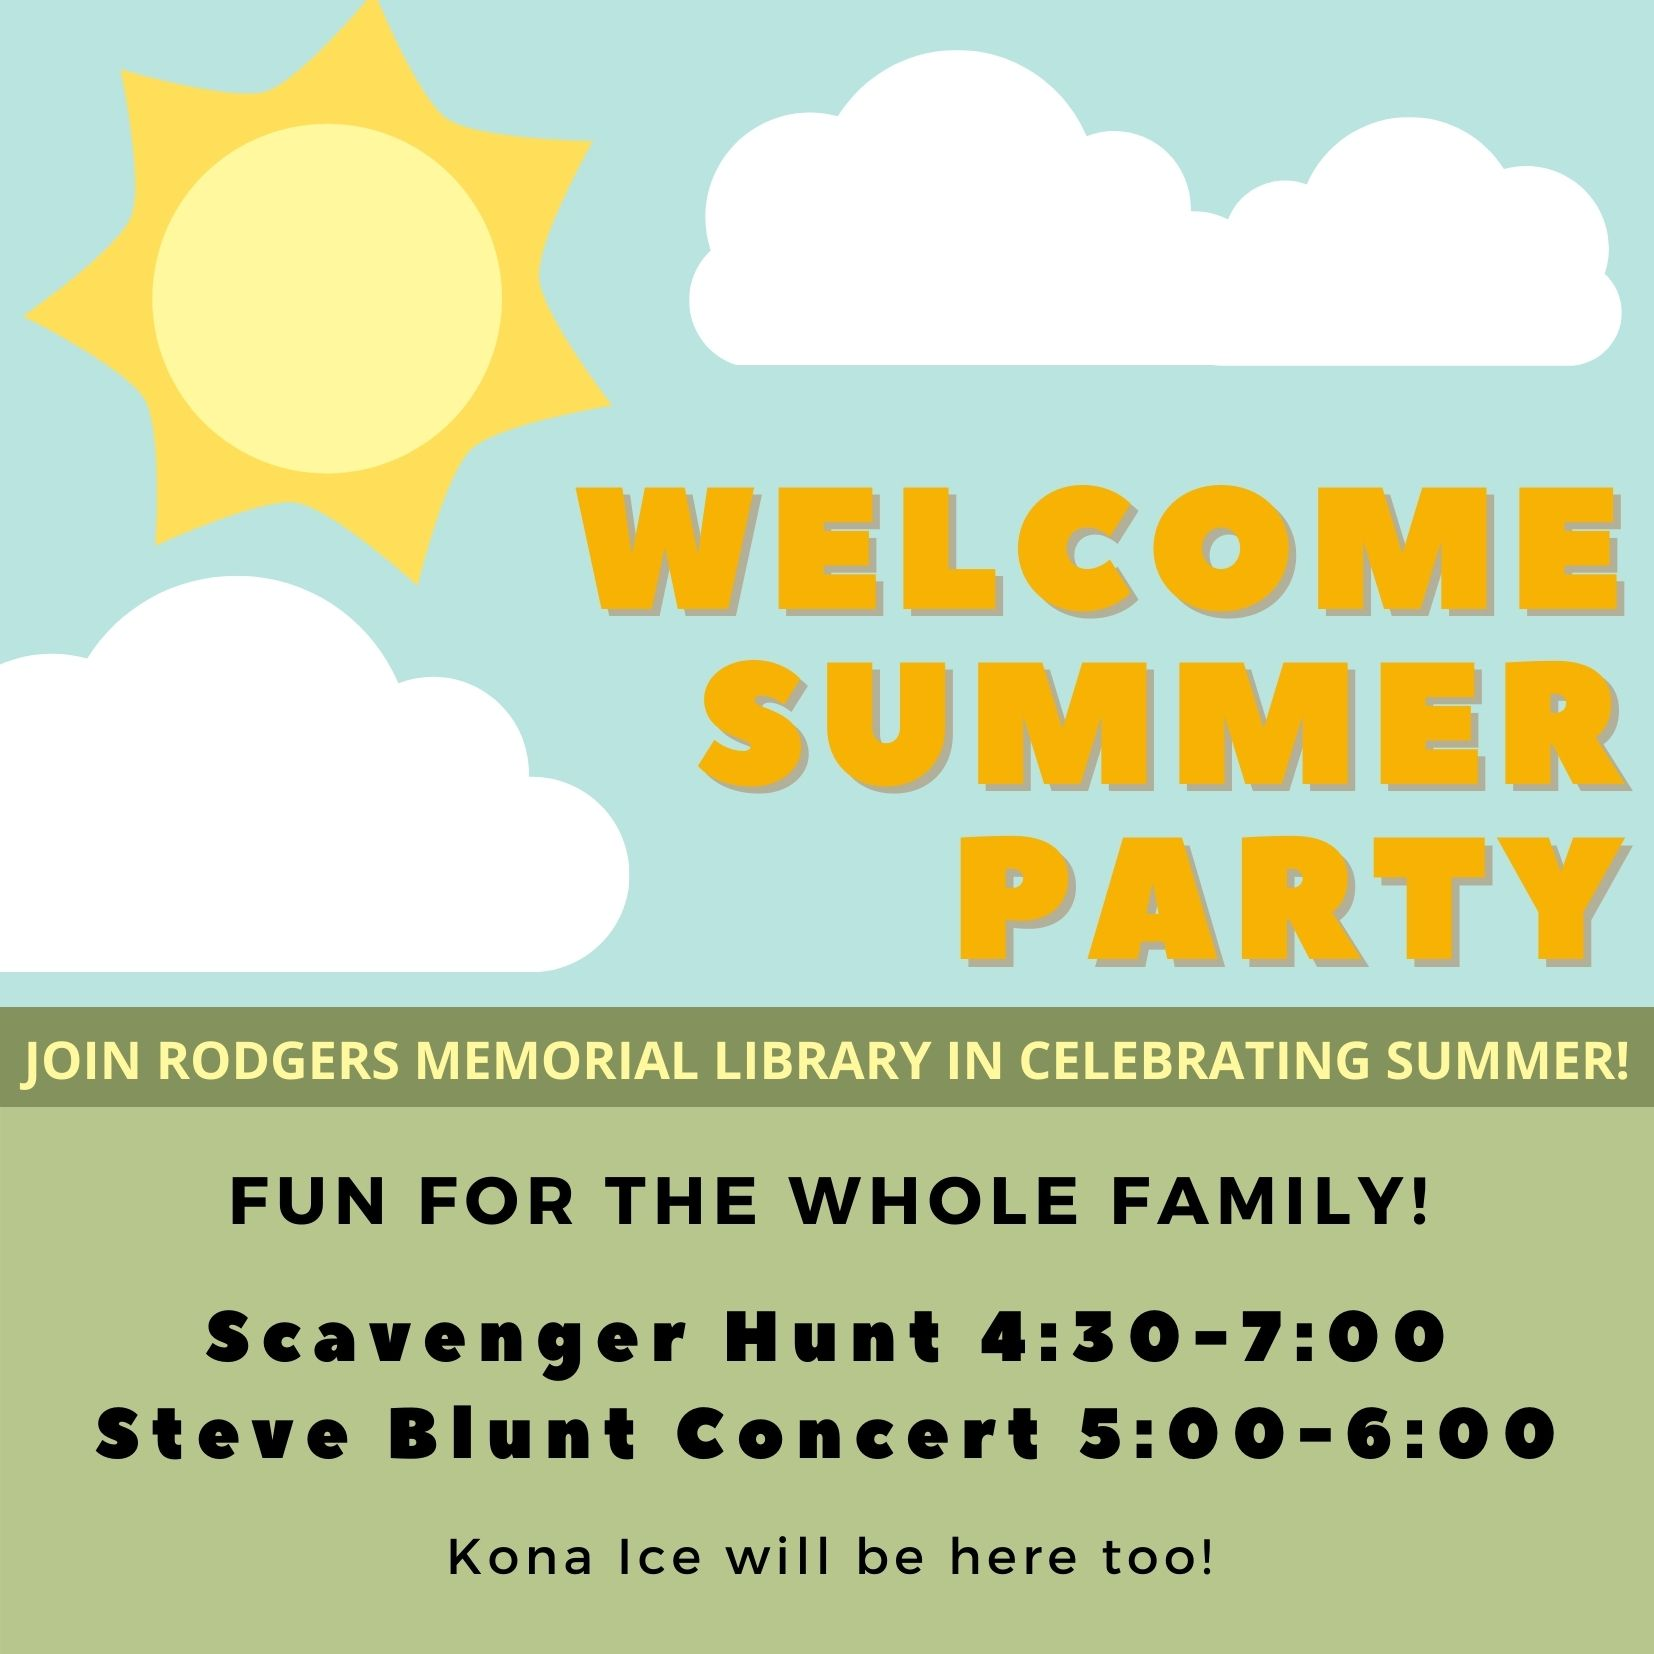 Welcome Summer Party! SRP